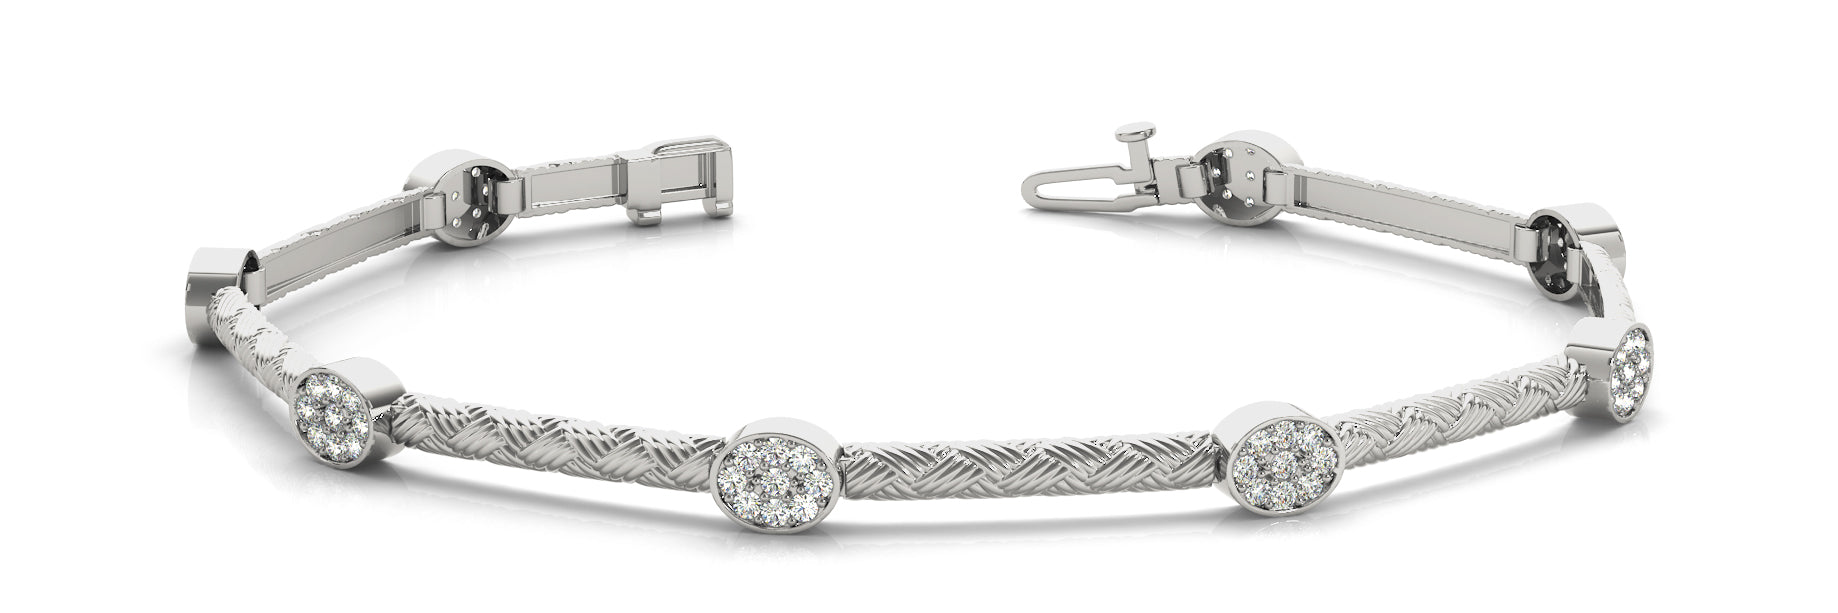 Fancy Diamond Bracelet Ladies 0.81ct tw - 14kt White Gold